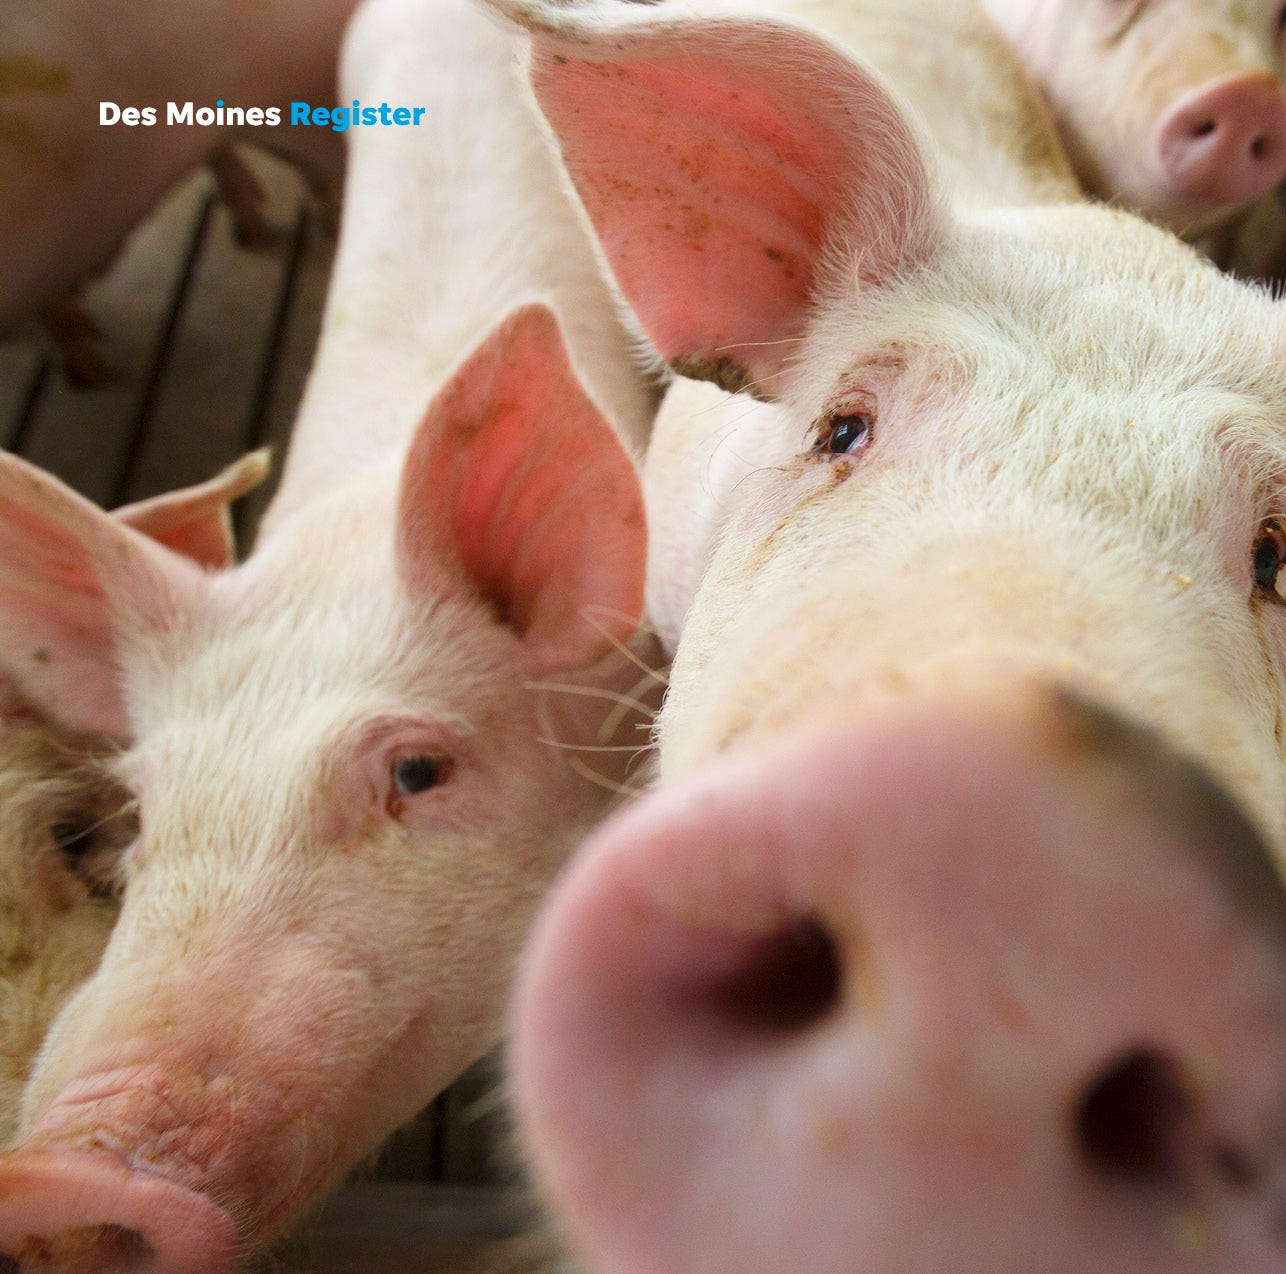 Iowa pork producers need expanded export markets, not regulations